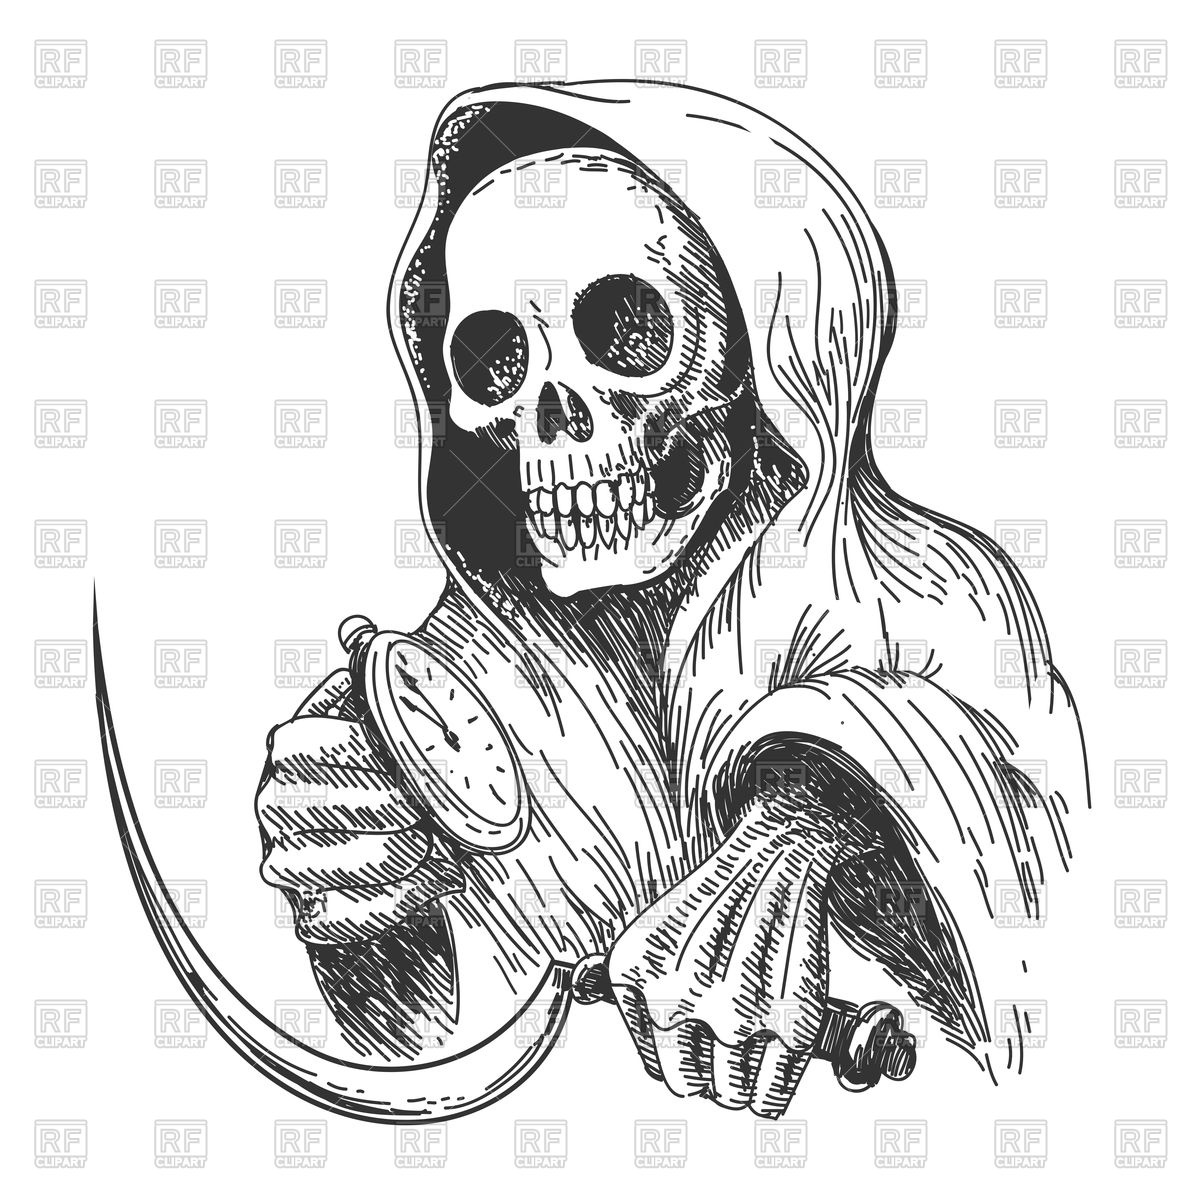 1200x1200 Death With Sickle And Pocket Watch, Ink Drawing Style Royalty Free